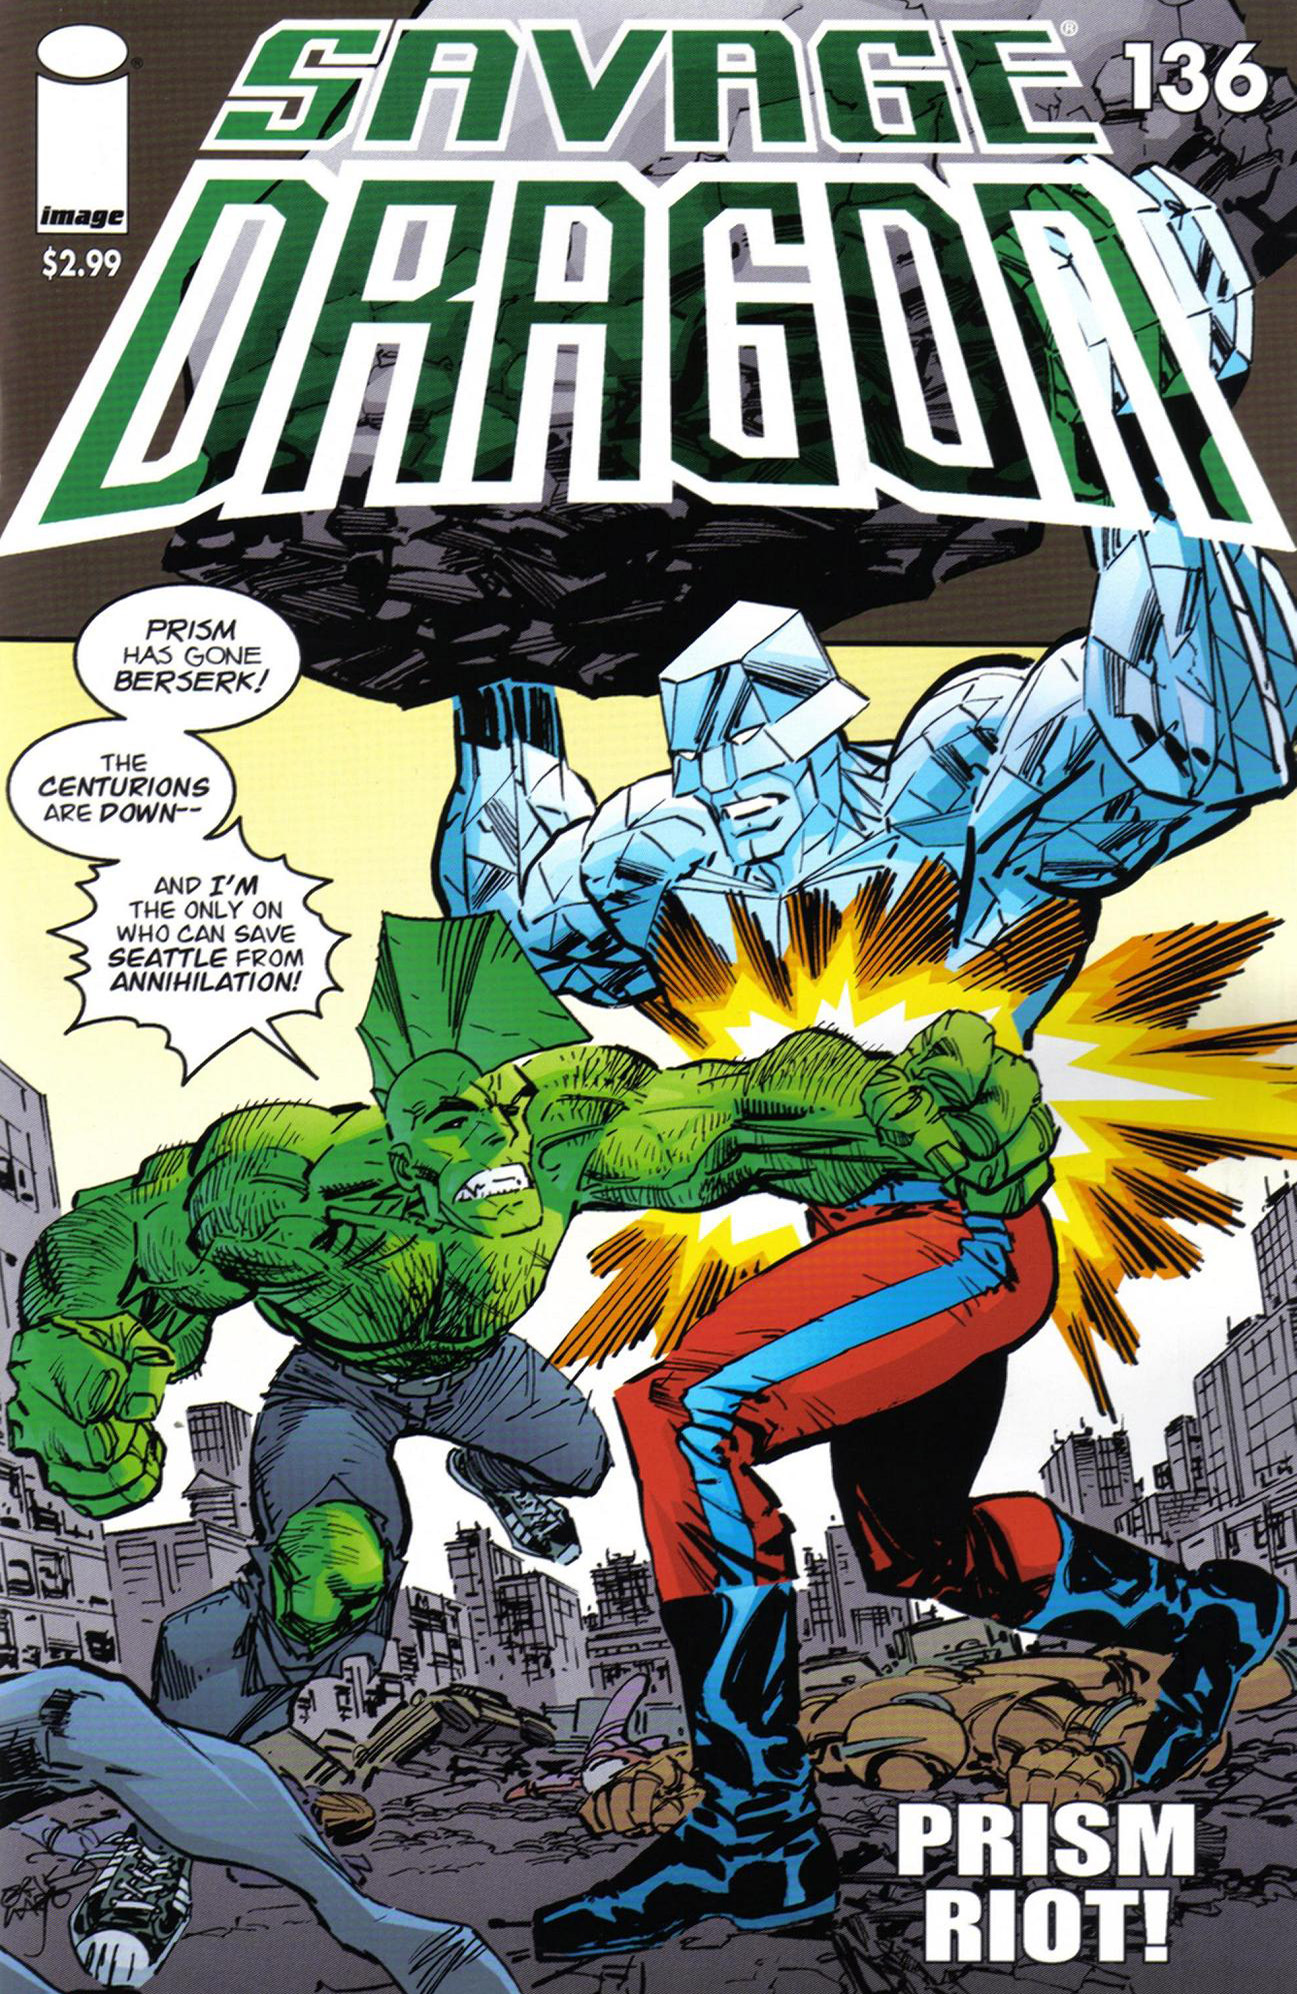 Cover Savage Dragon Vol.2 #136